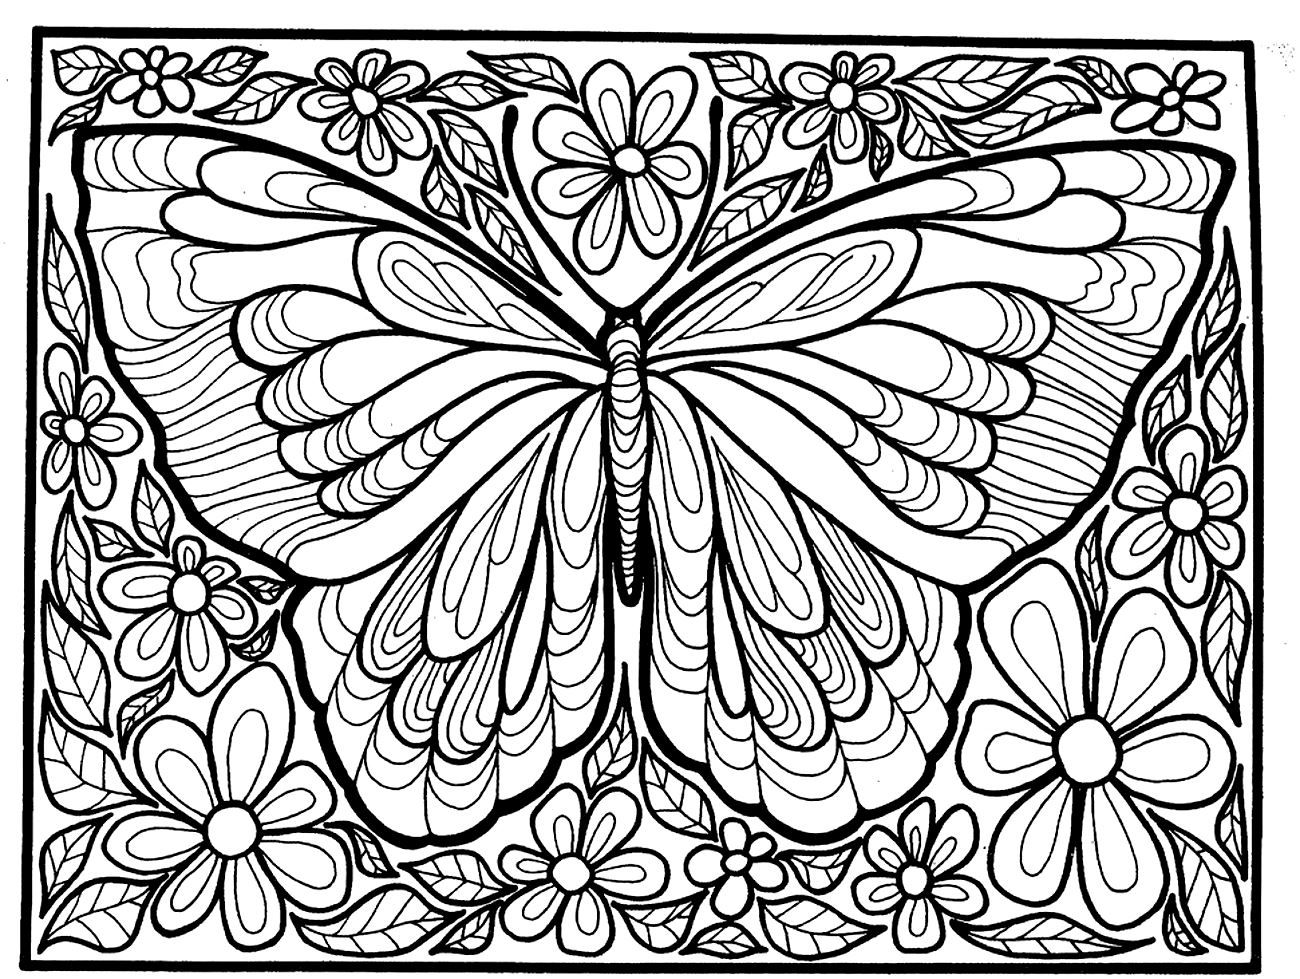 Butterfly coloring page symmetry - To Print This Free Coloring Page Coloring Adult Difficult Big Butterfly